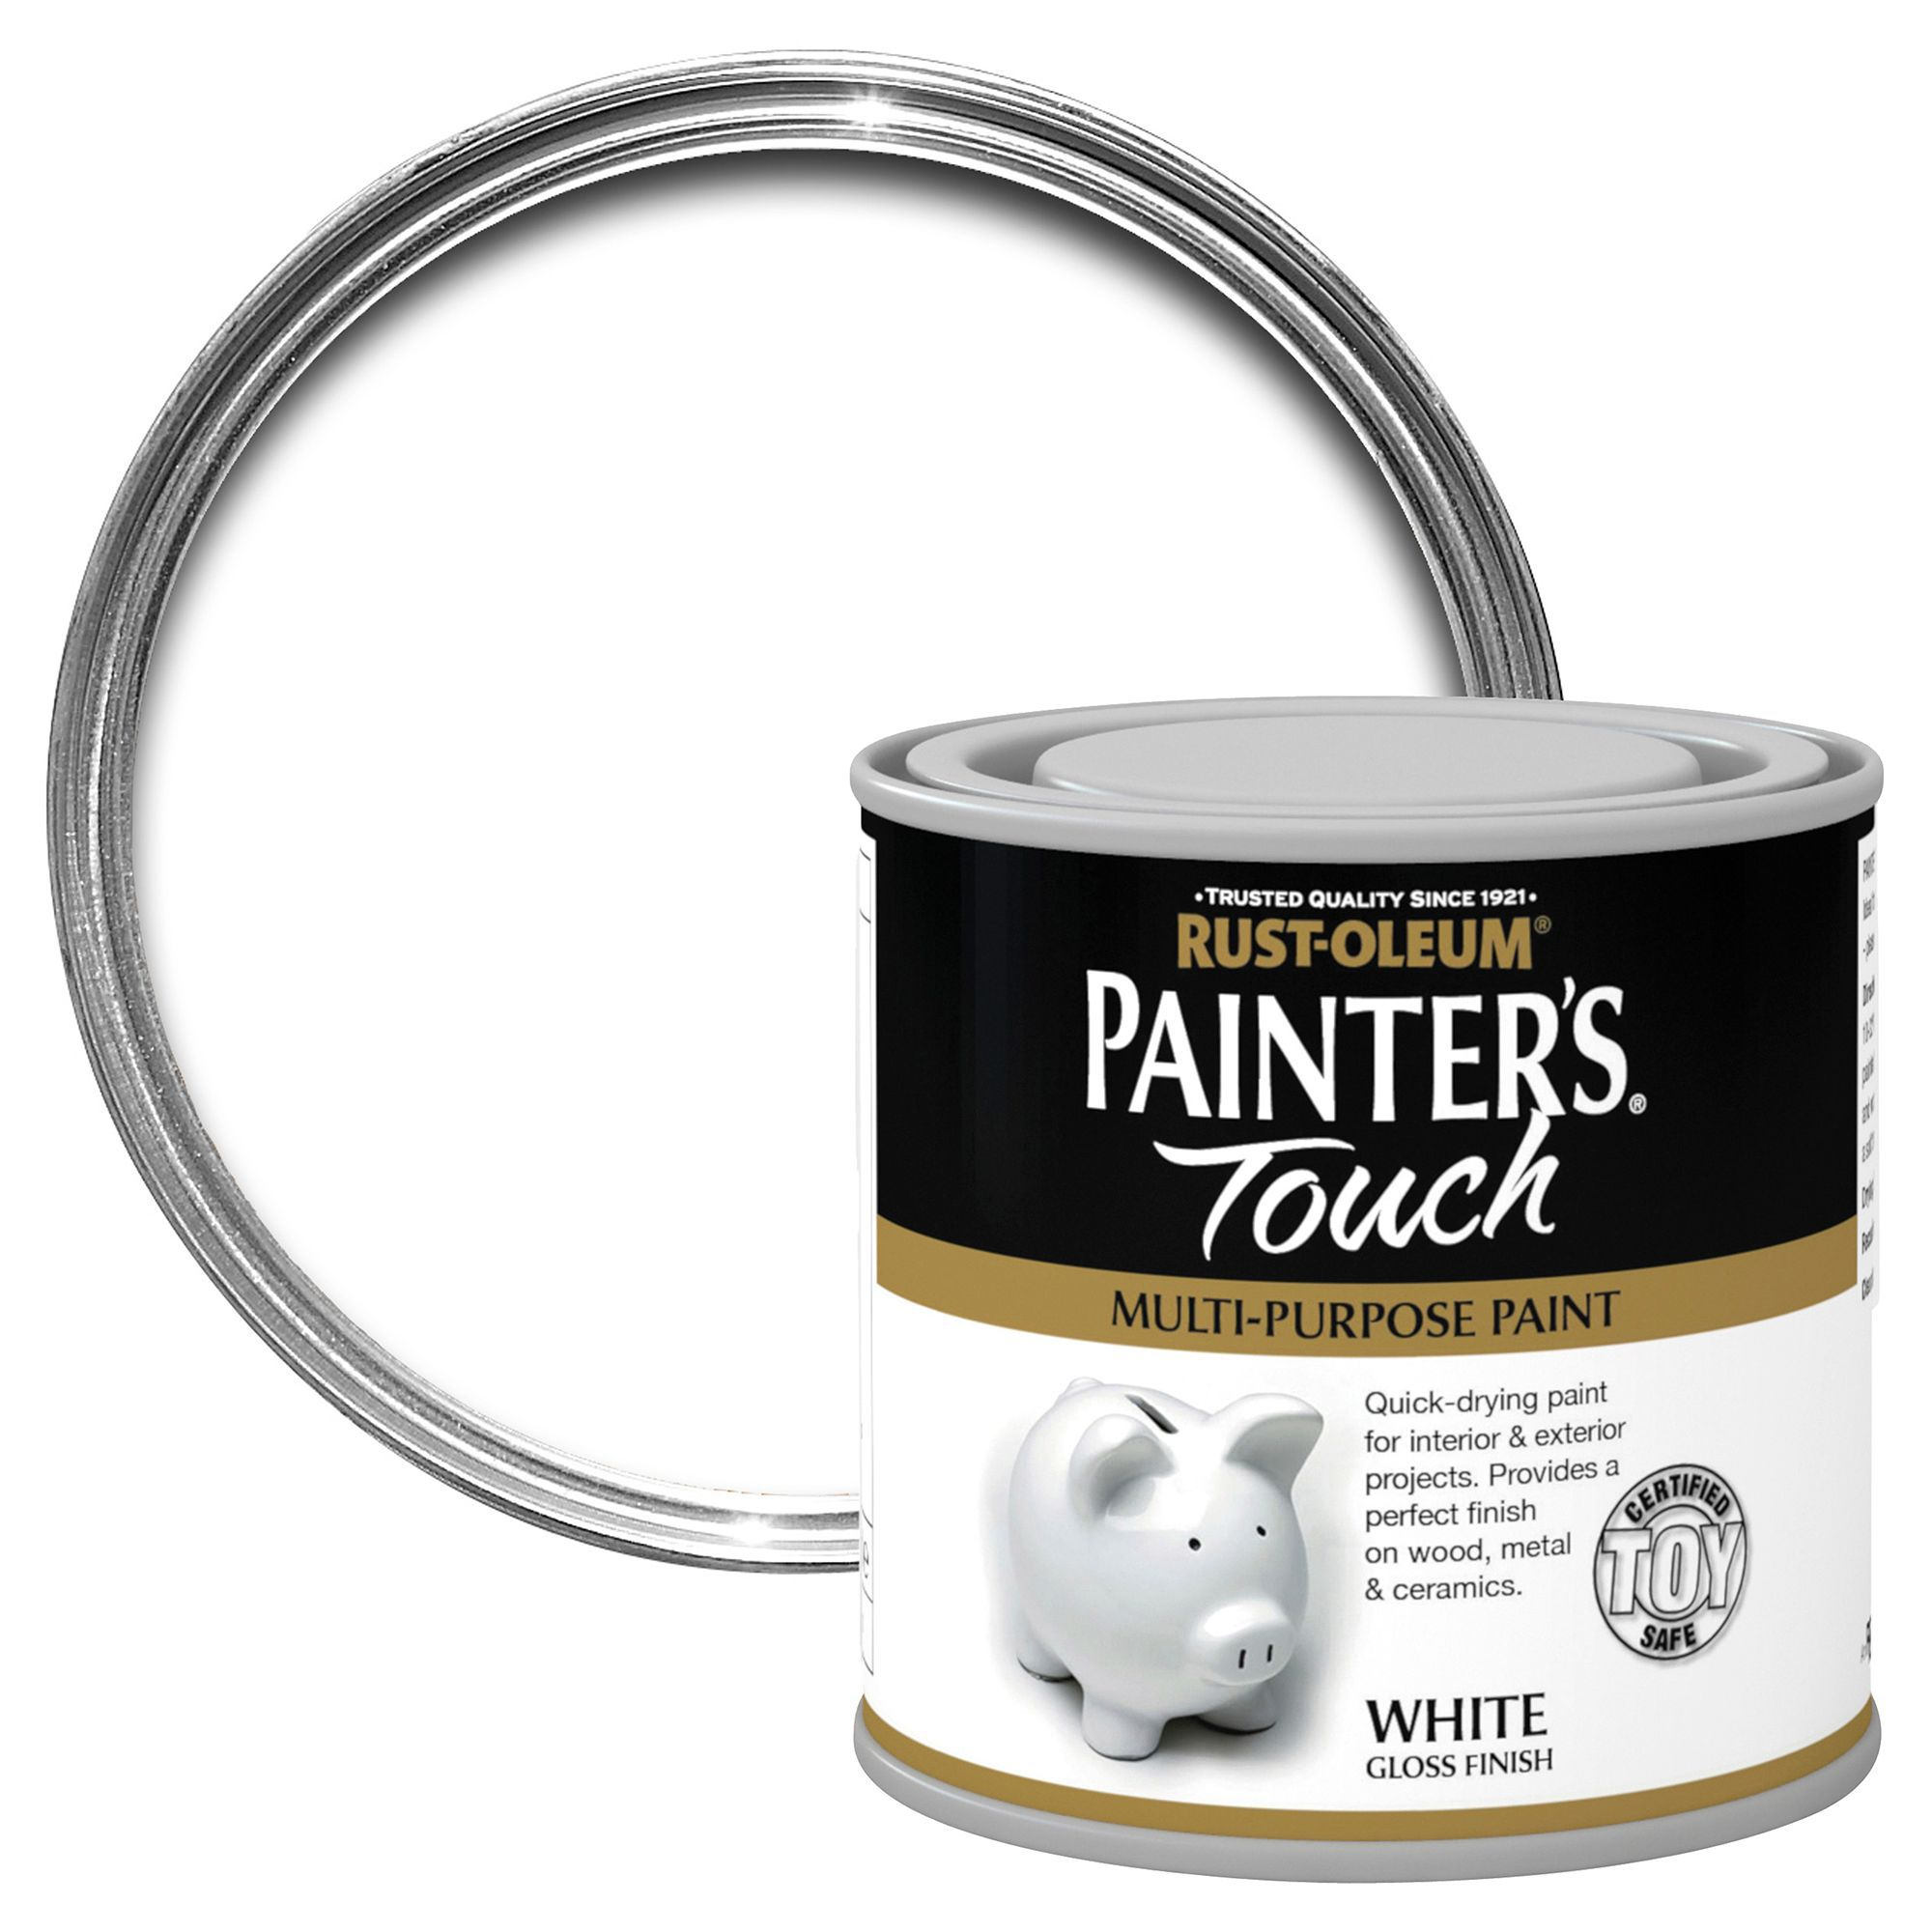 Rust-oleum Painter's Touch Interior & Exterior White Gloss Multipurpose Paint 250ml